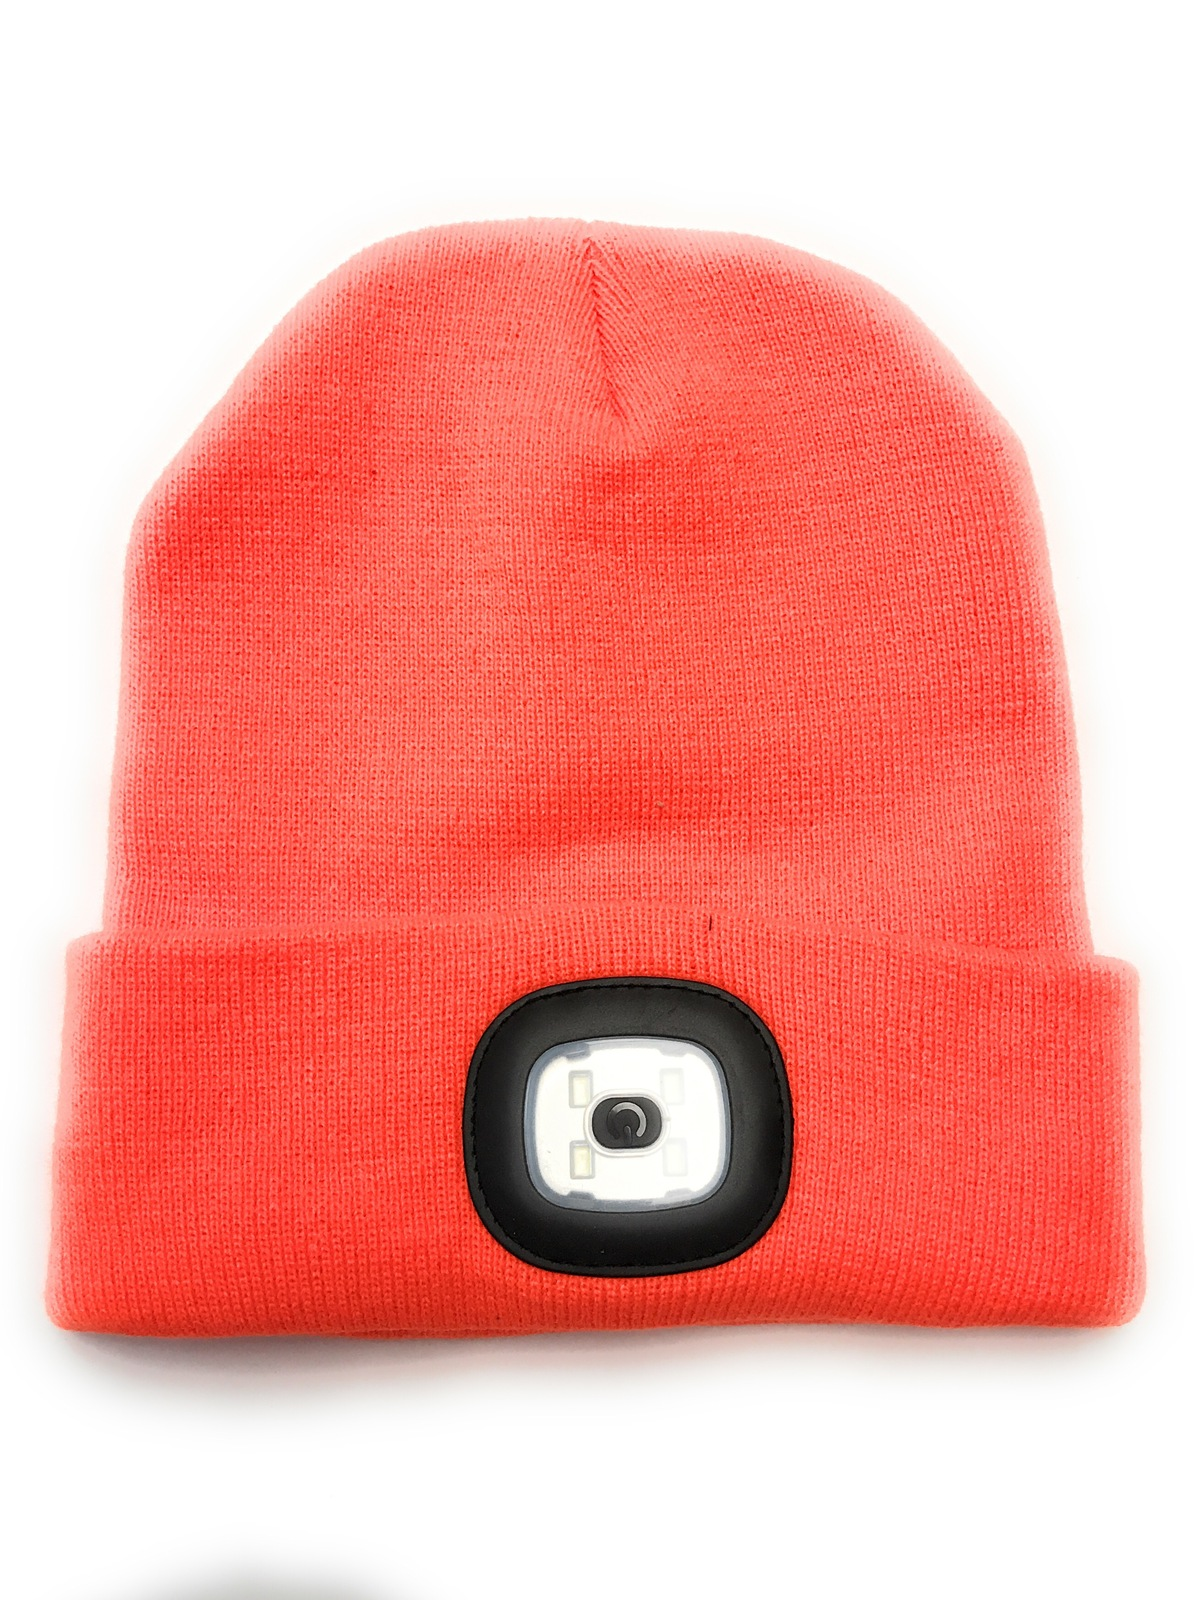 c41452580a9 Diamond Visions LED Beanie Cap